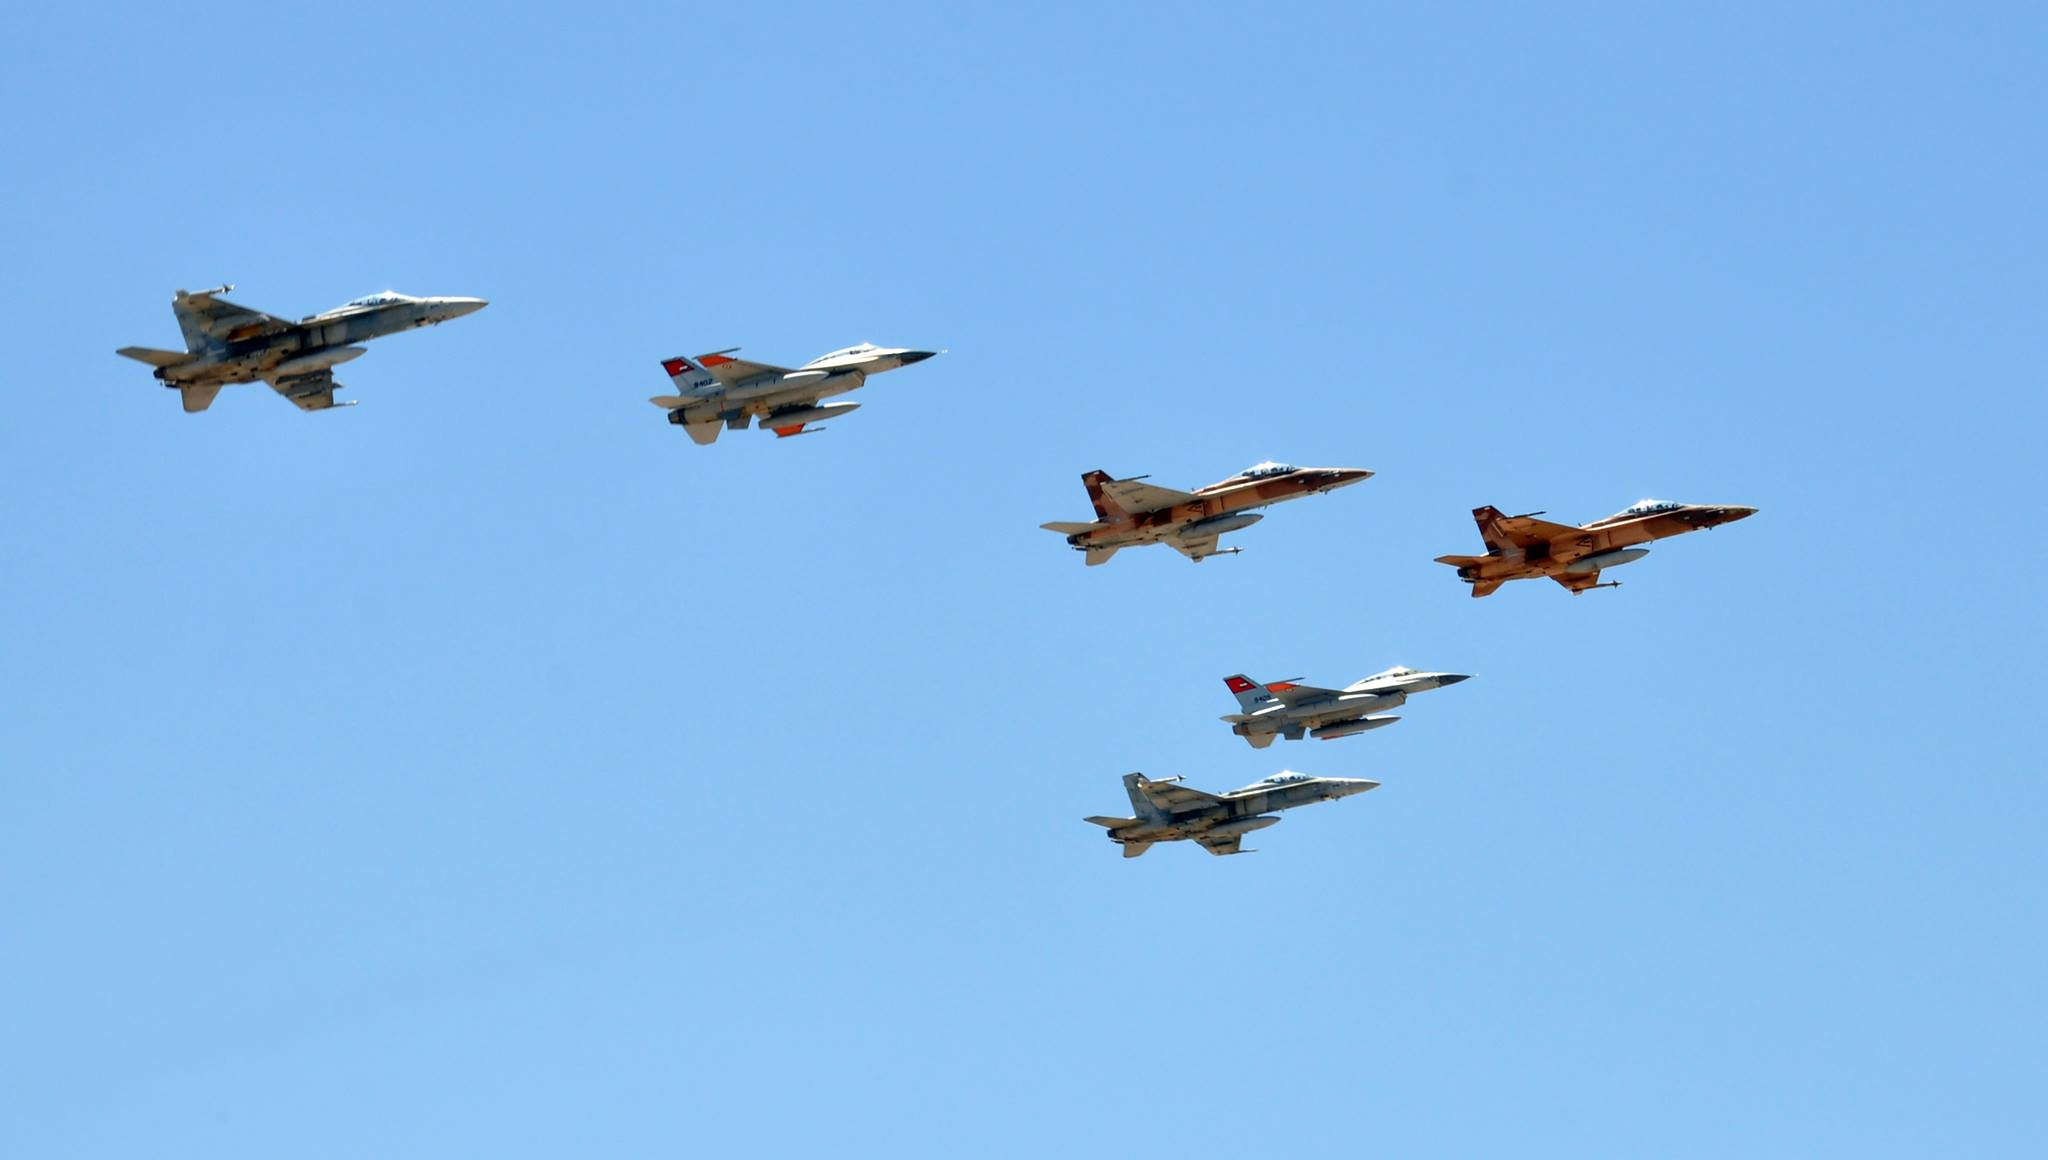 Egypt`s fighter jets participated in an airshow to mark Sinai Liberation Day.